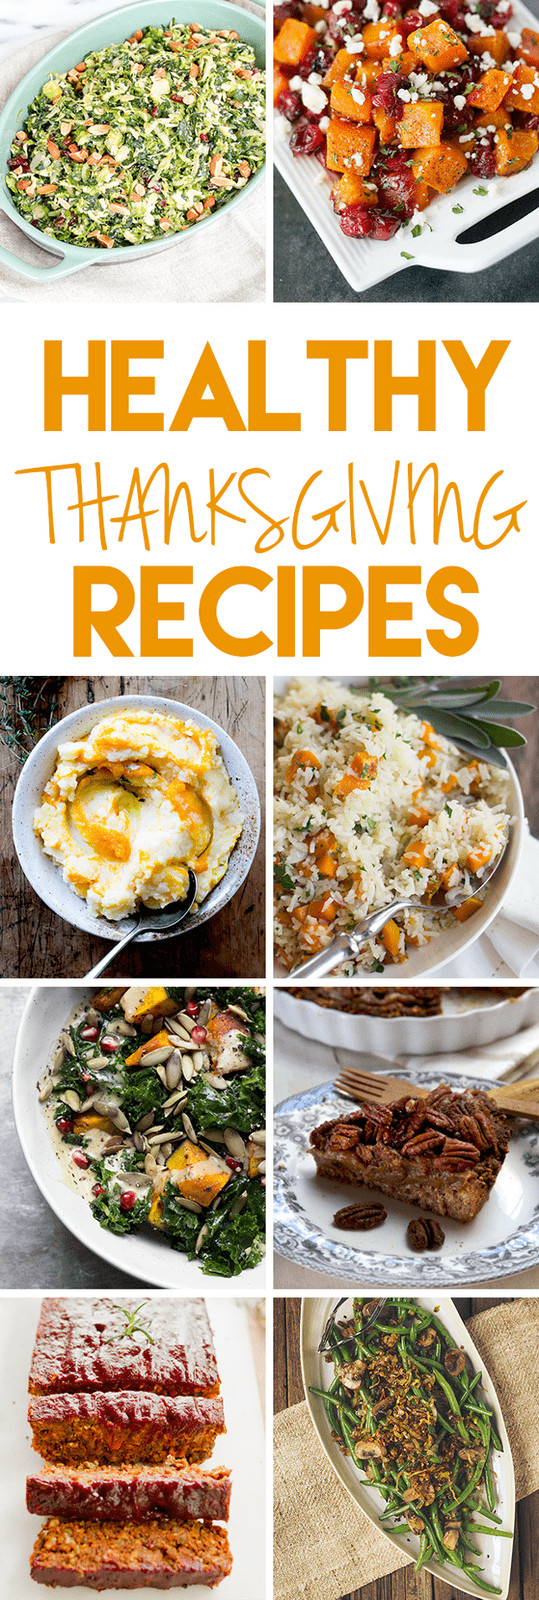 Healthy Thanksgiving Dishes  Healthy Thanksgiving Recipes gluten free ve arian